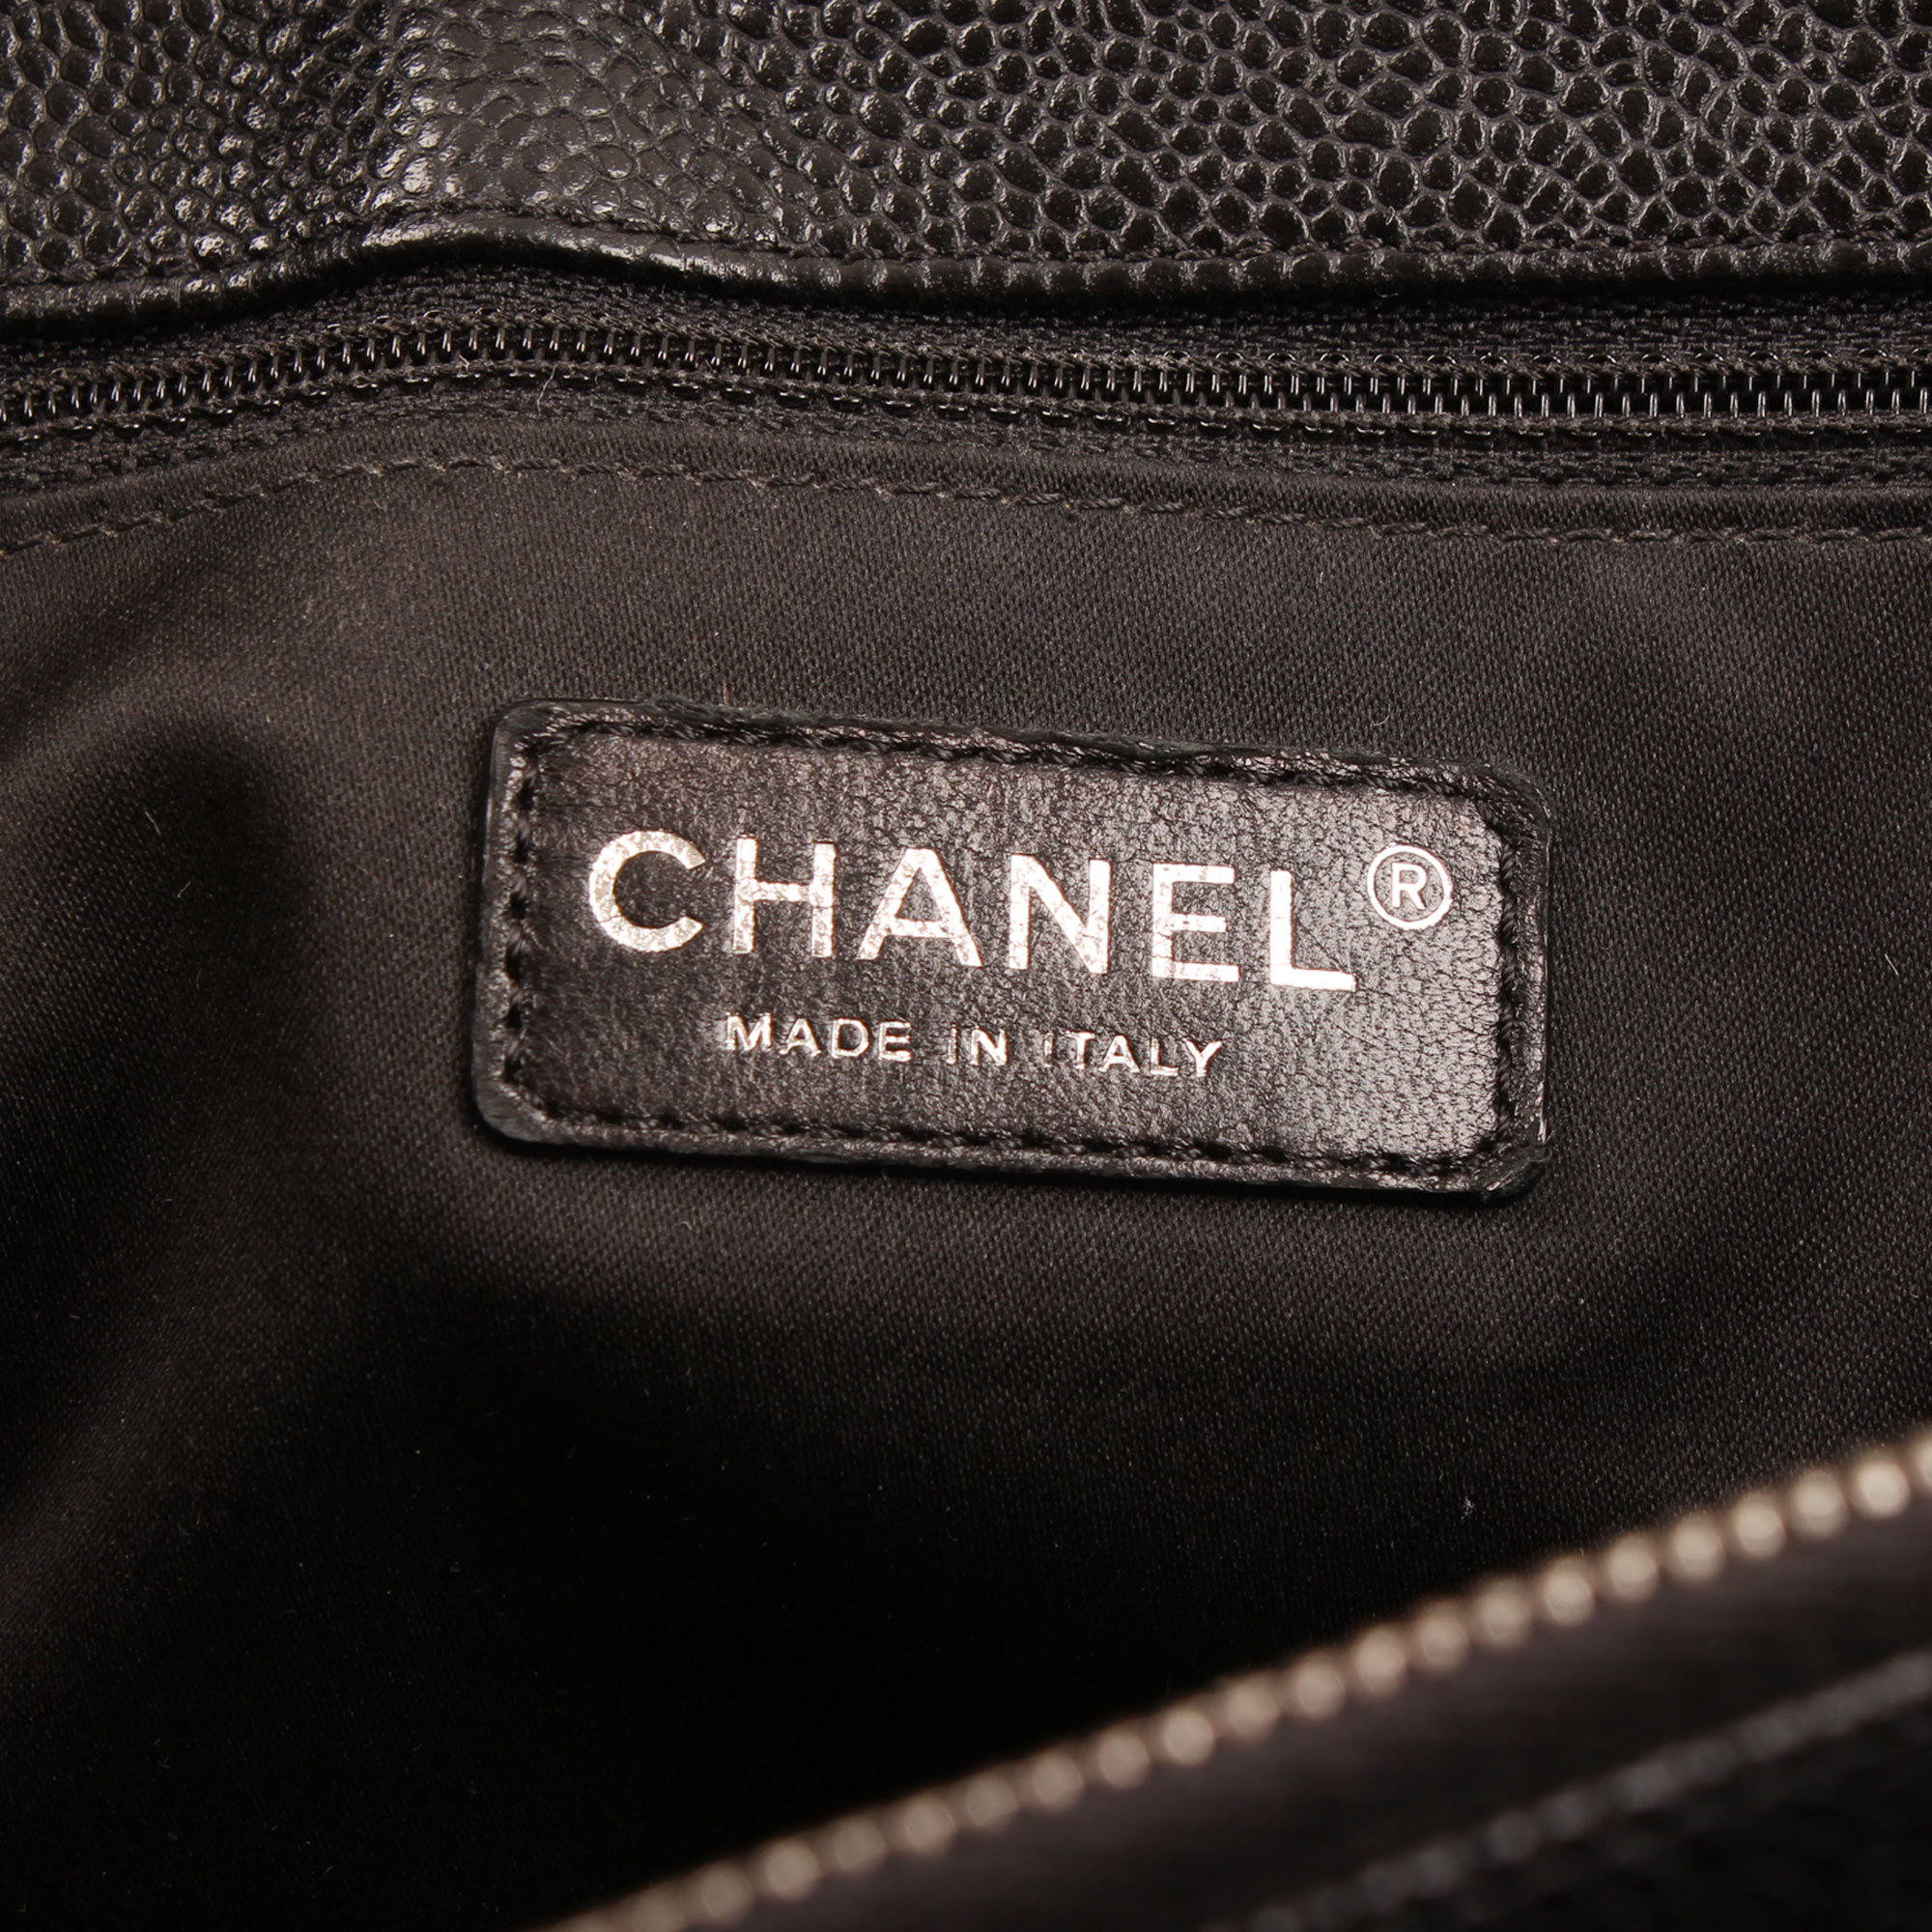 Interior tag image of chanel grand shopping tote bag black caviar leather